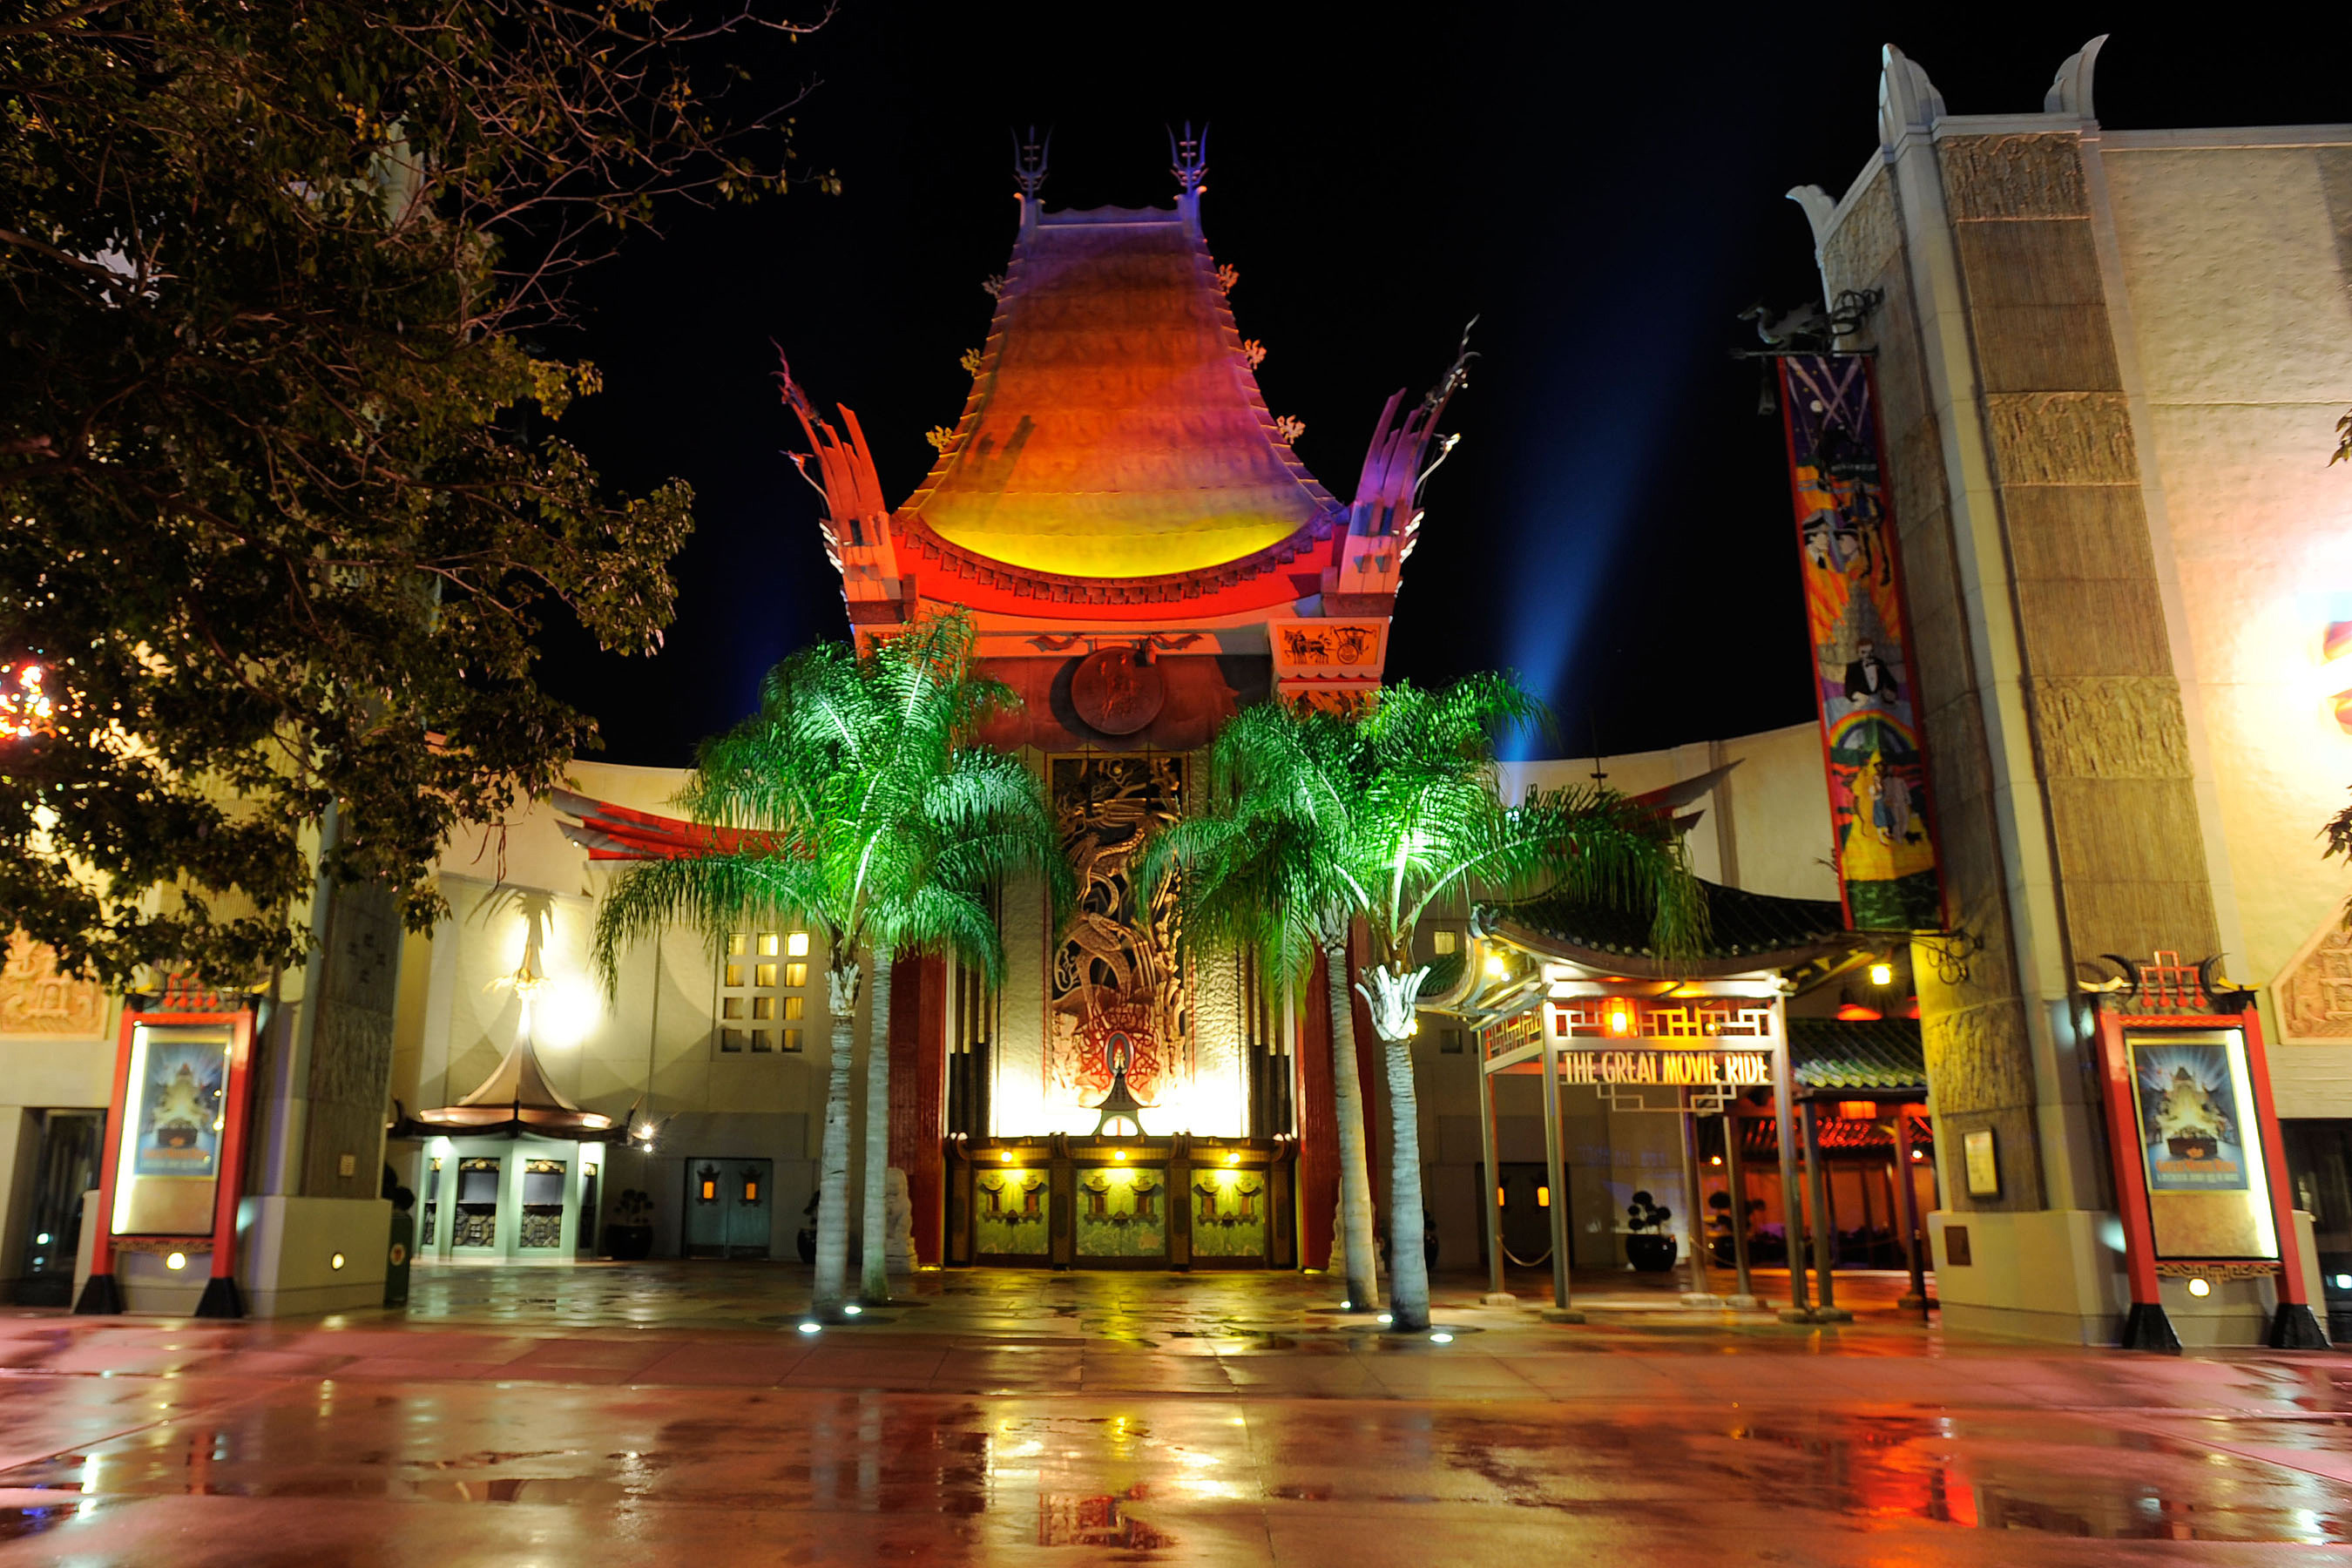 The Chinese Theatre at night.